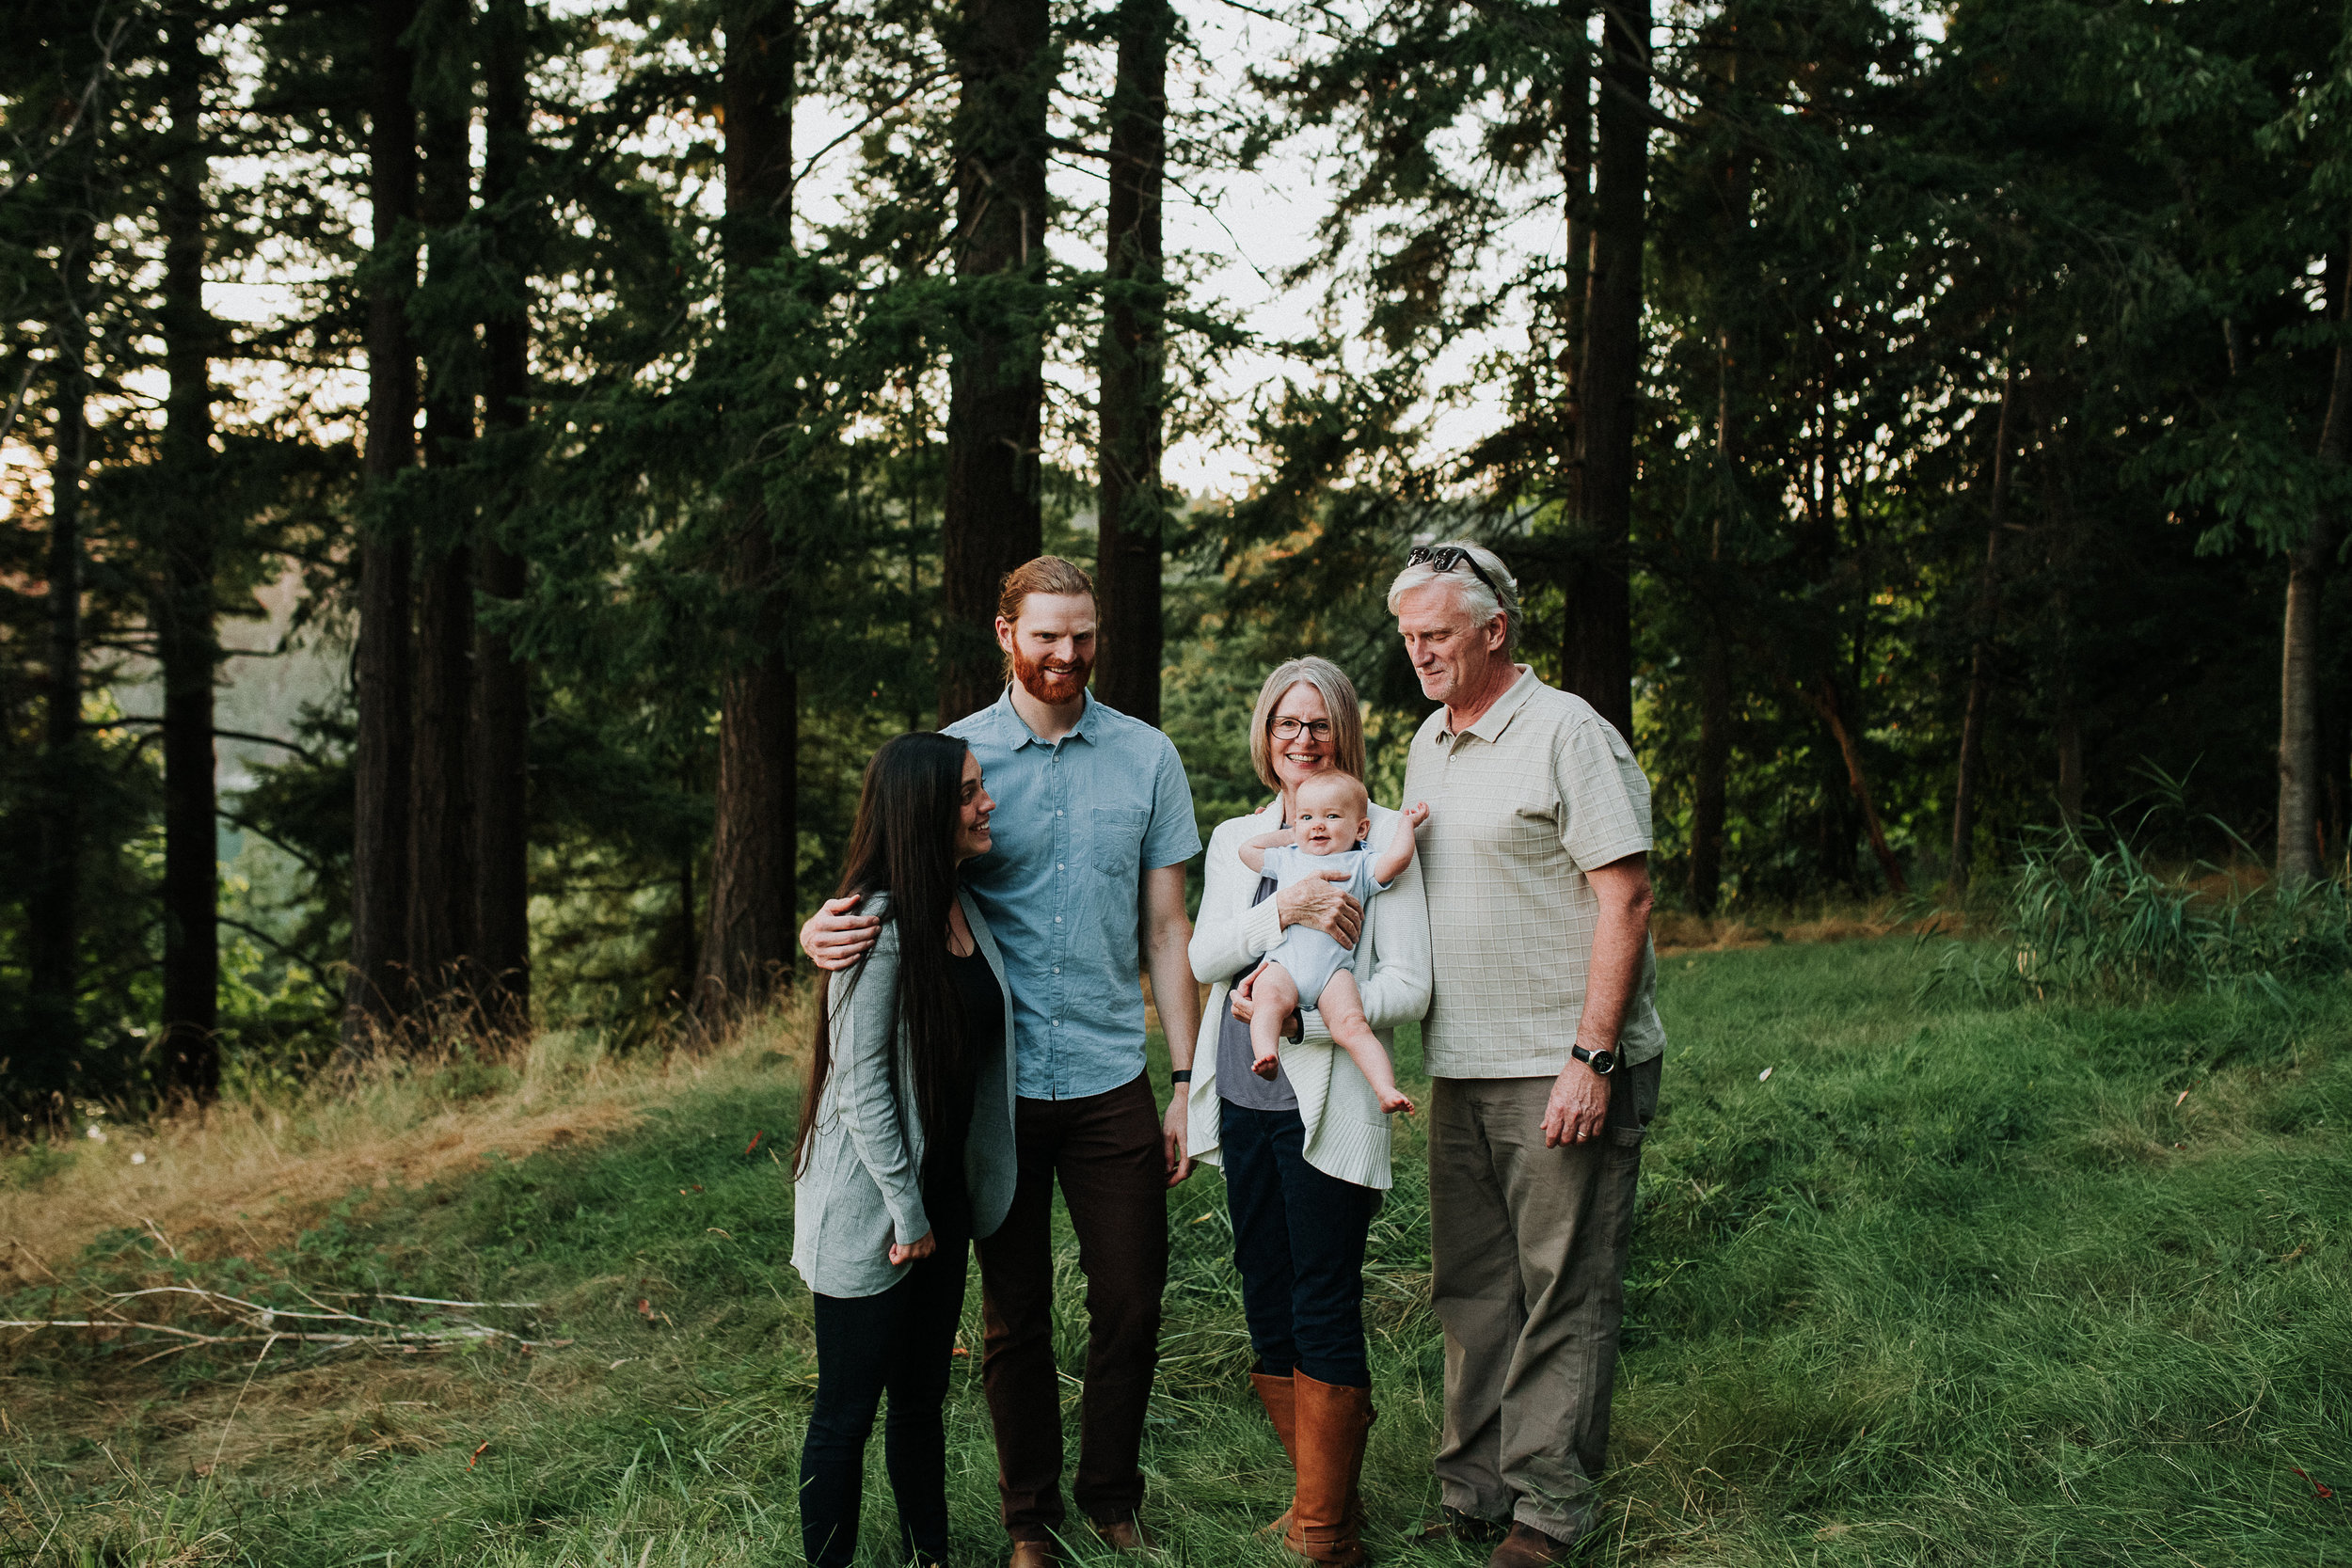 Lifestyle-Photographer-Bellingham-WA-Brianne-Bell-Photography-(Liv)